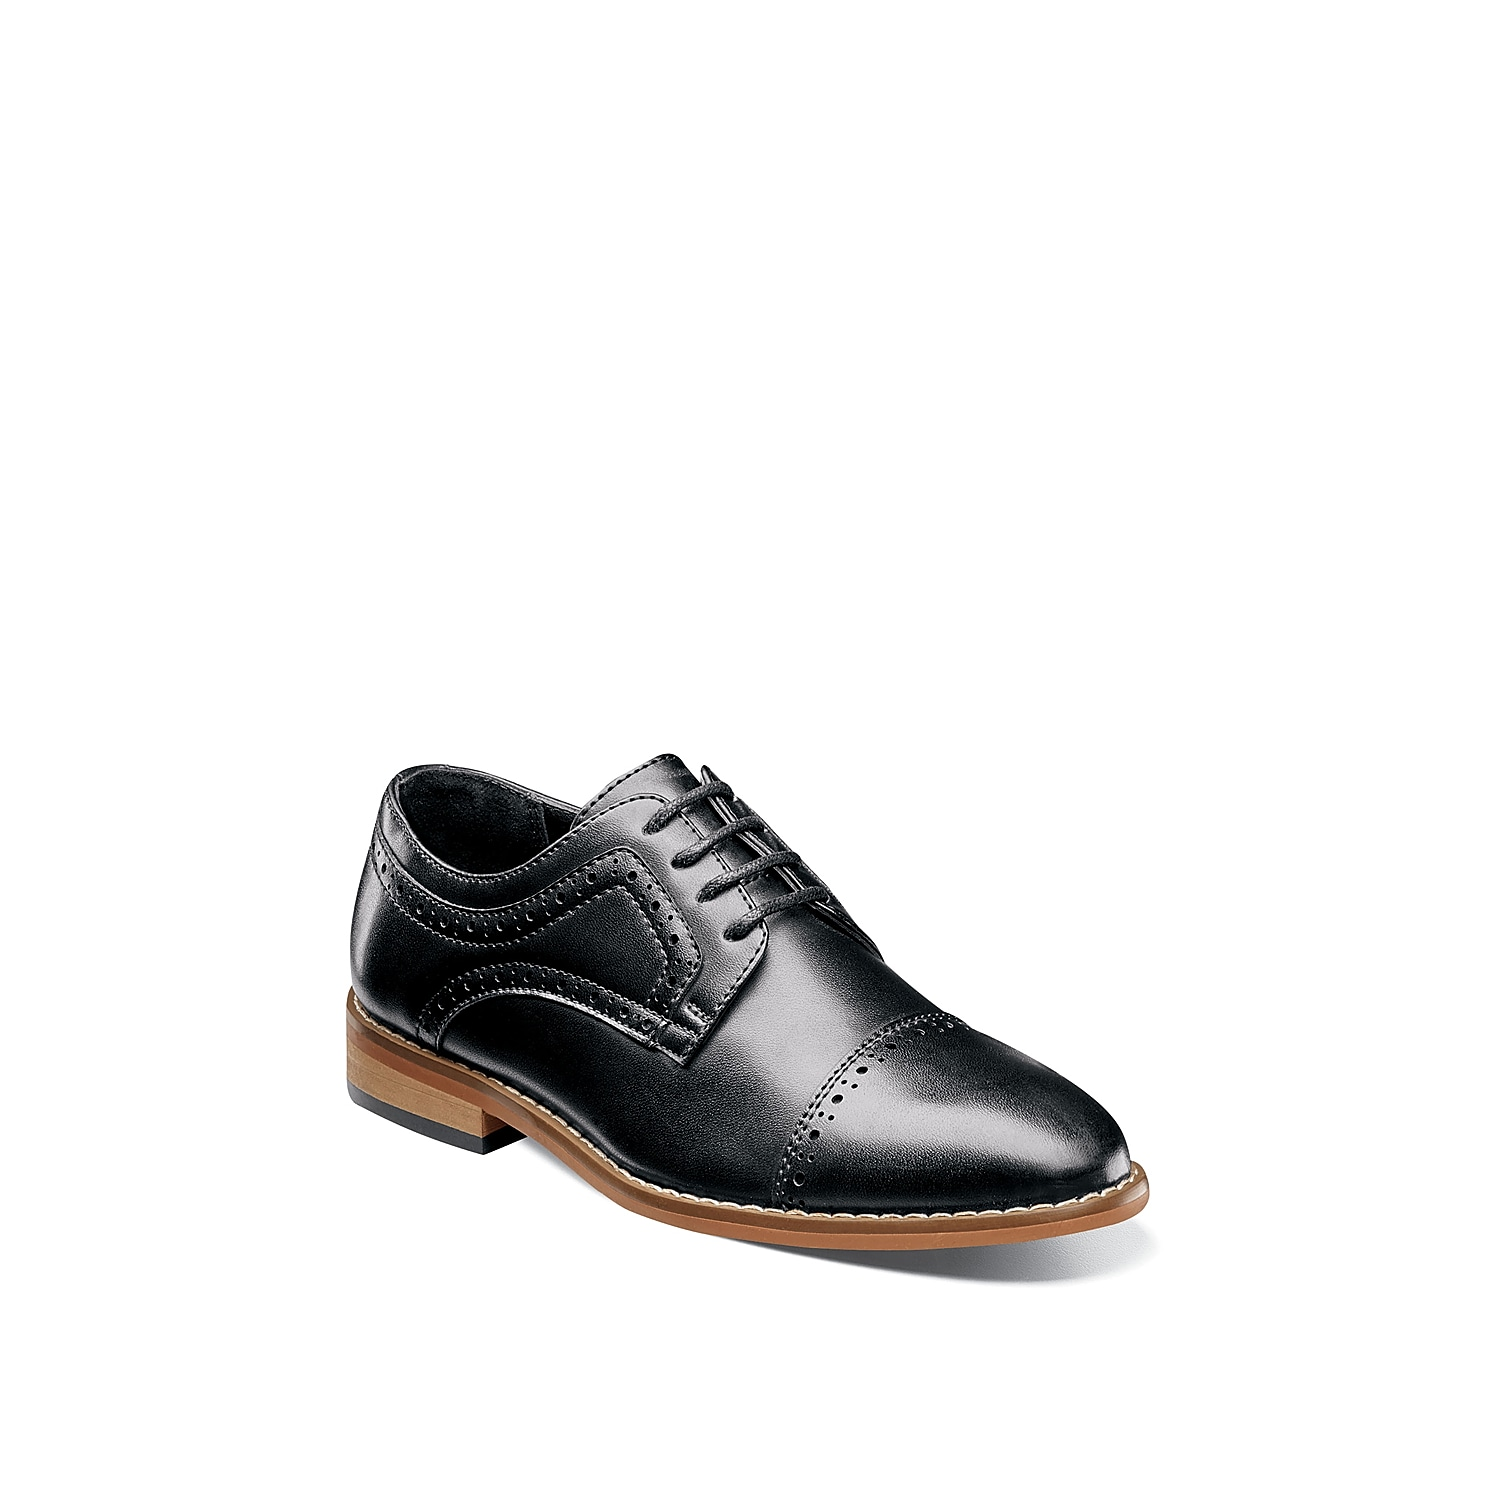 Your little guy will look absolutely dapper when wearing hte Dickinson oxford from Stacy Adams. This dress shoe features perforated brogue detailing that will give his outfit a handsome look! Not sure which size to order? Clickhereto check out our Kids' Measuring Guide! For more helpful tips and sizing FAQs, clickhere.